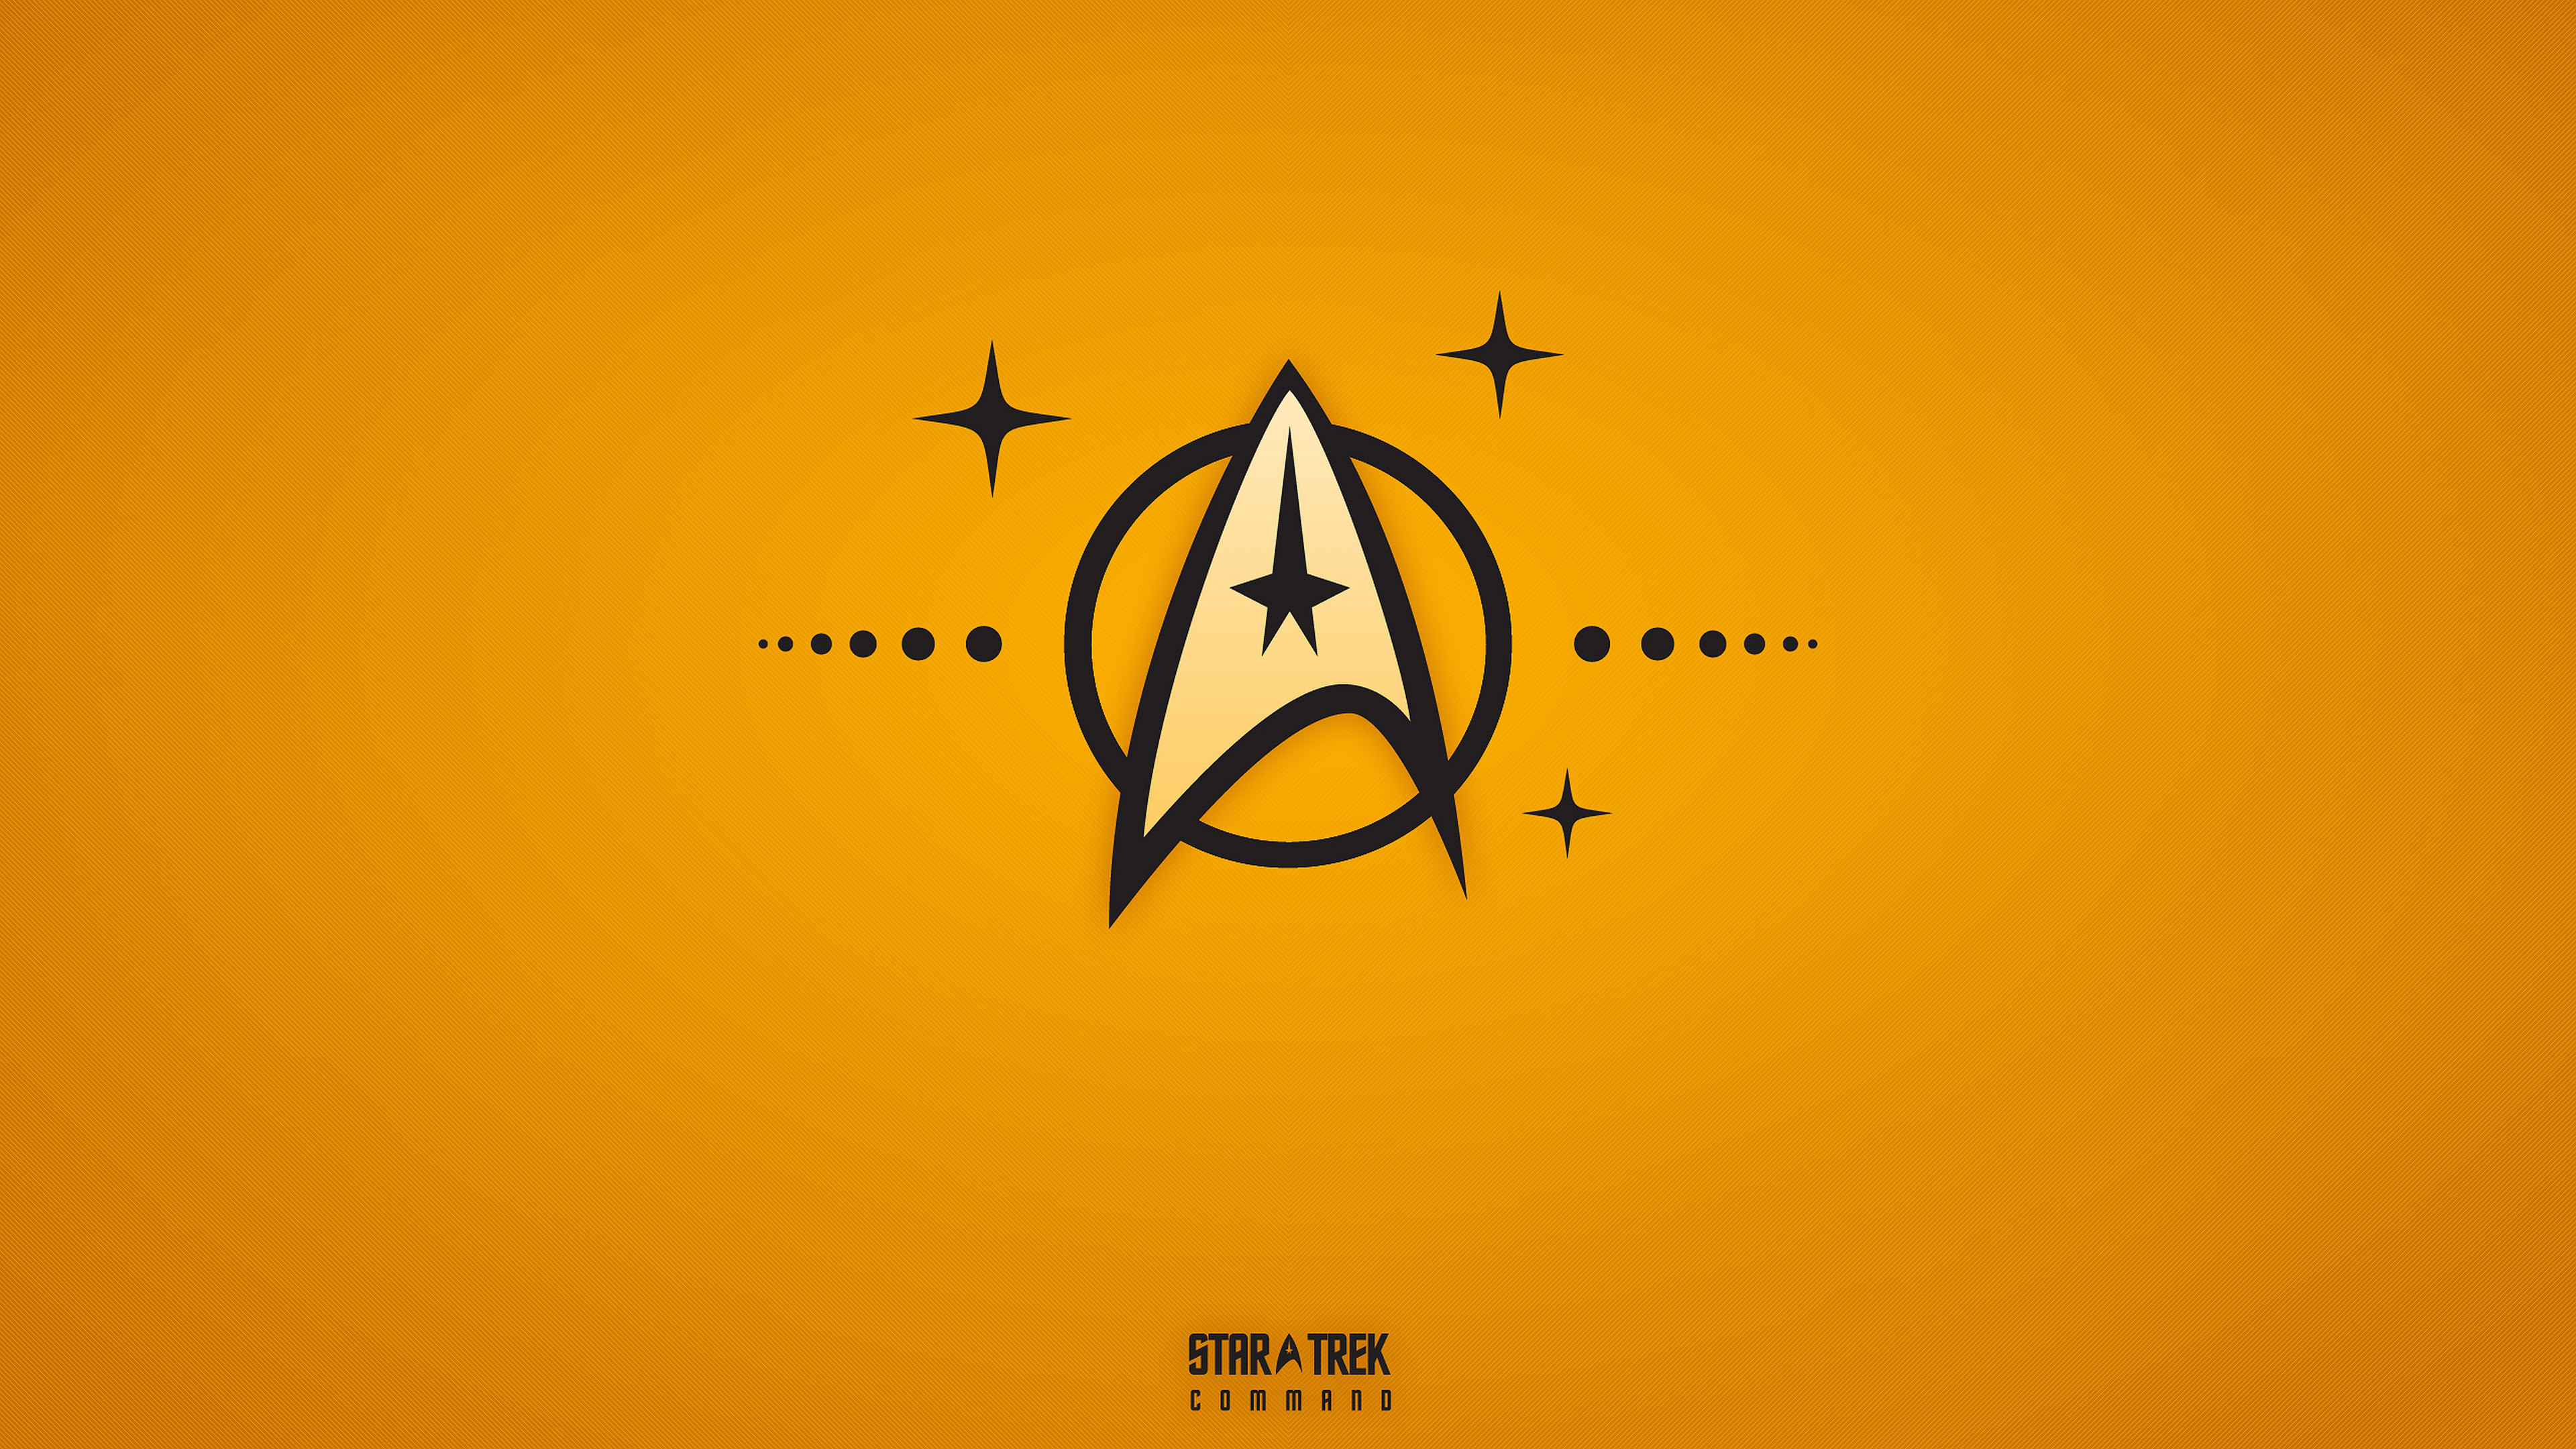 Res: 3840x2160, ... Trek: Starfleet Command HD Wallpaper